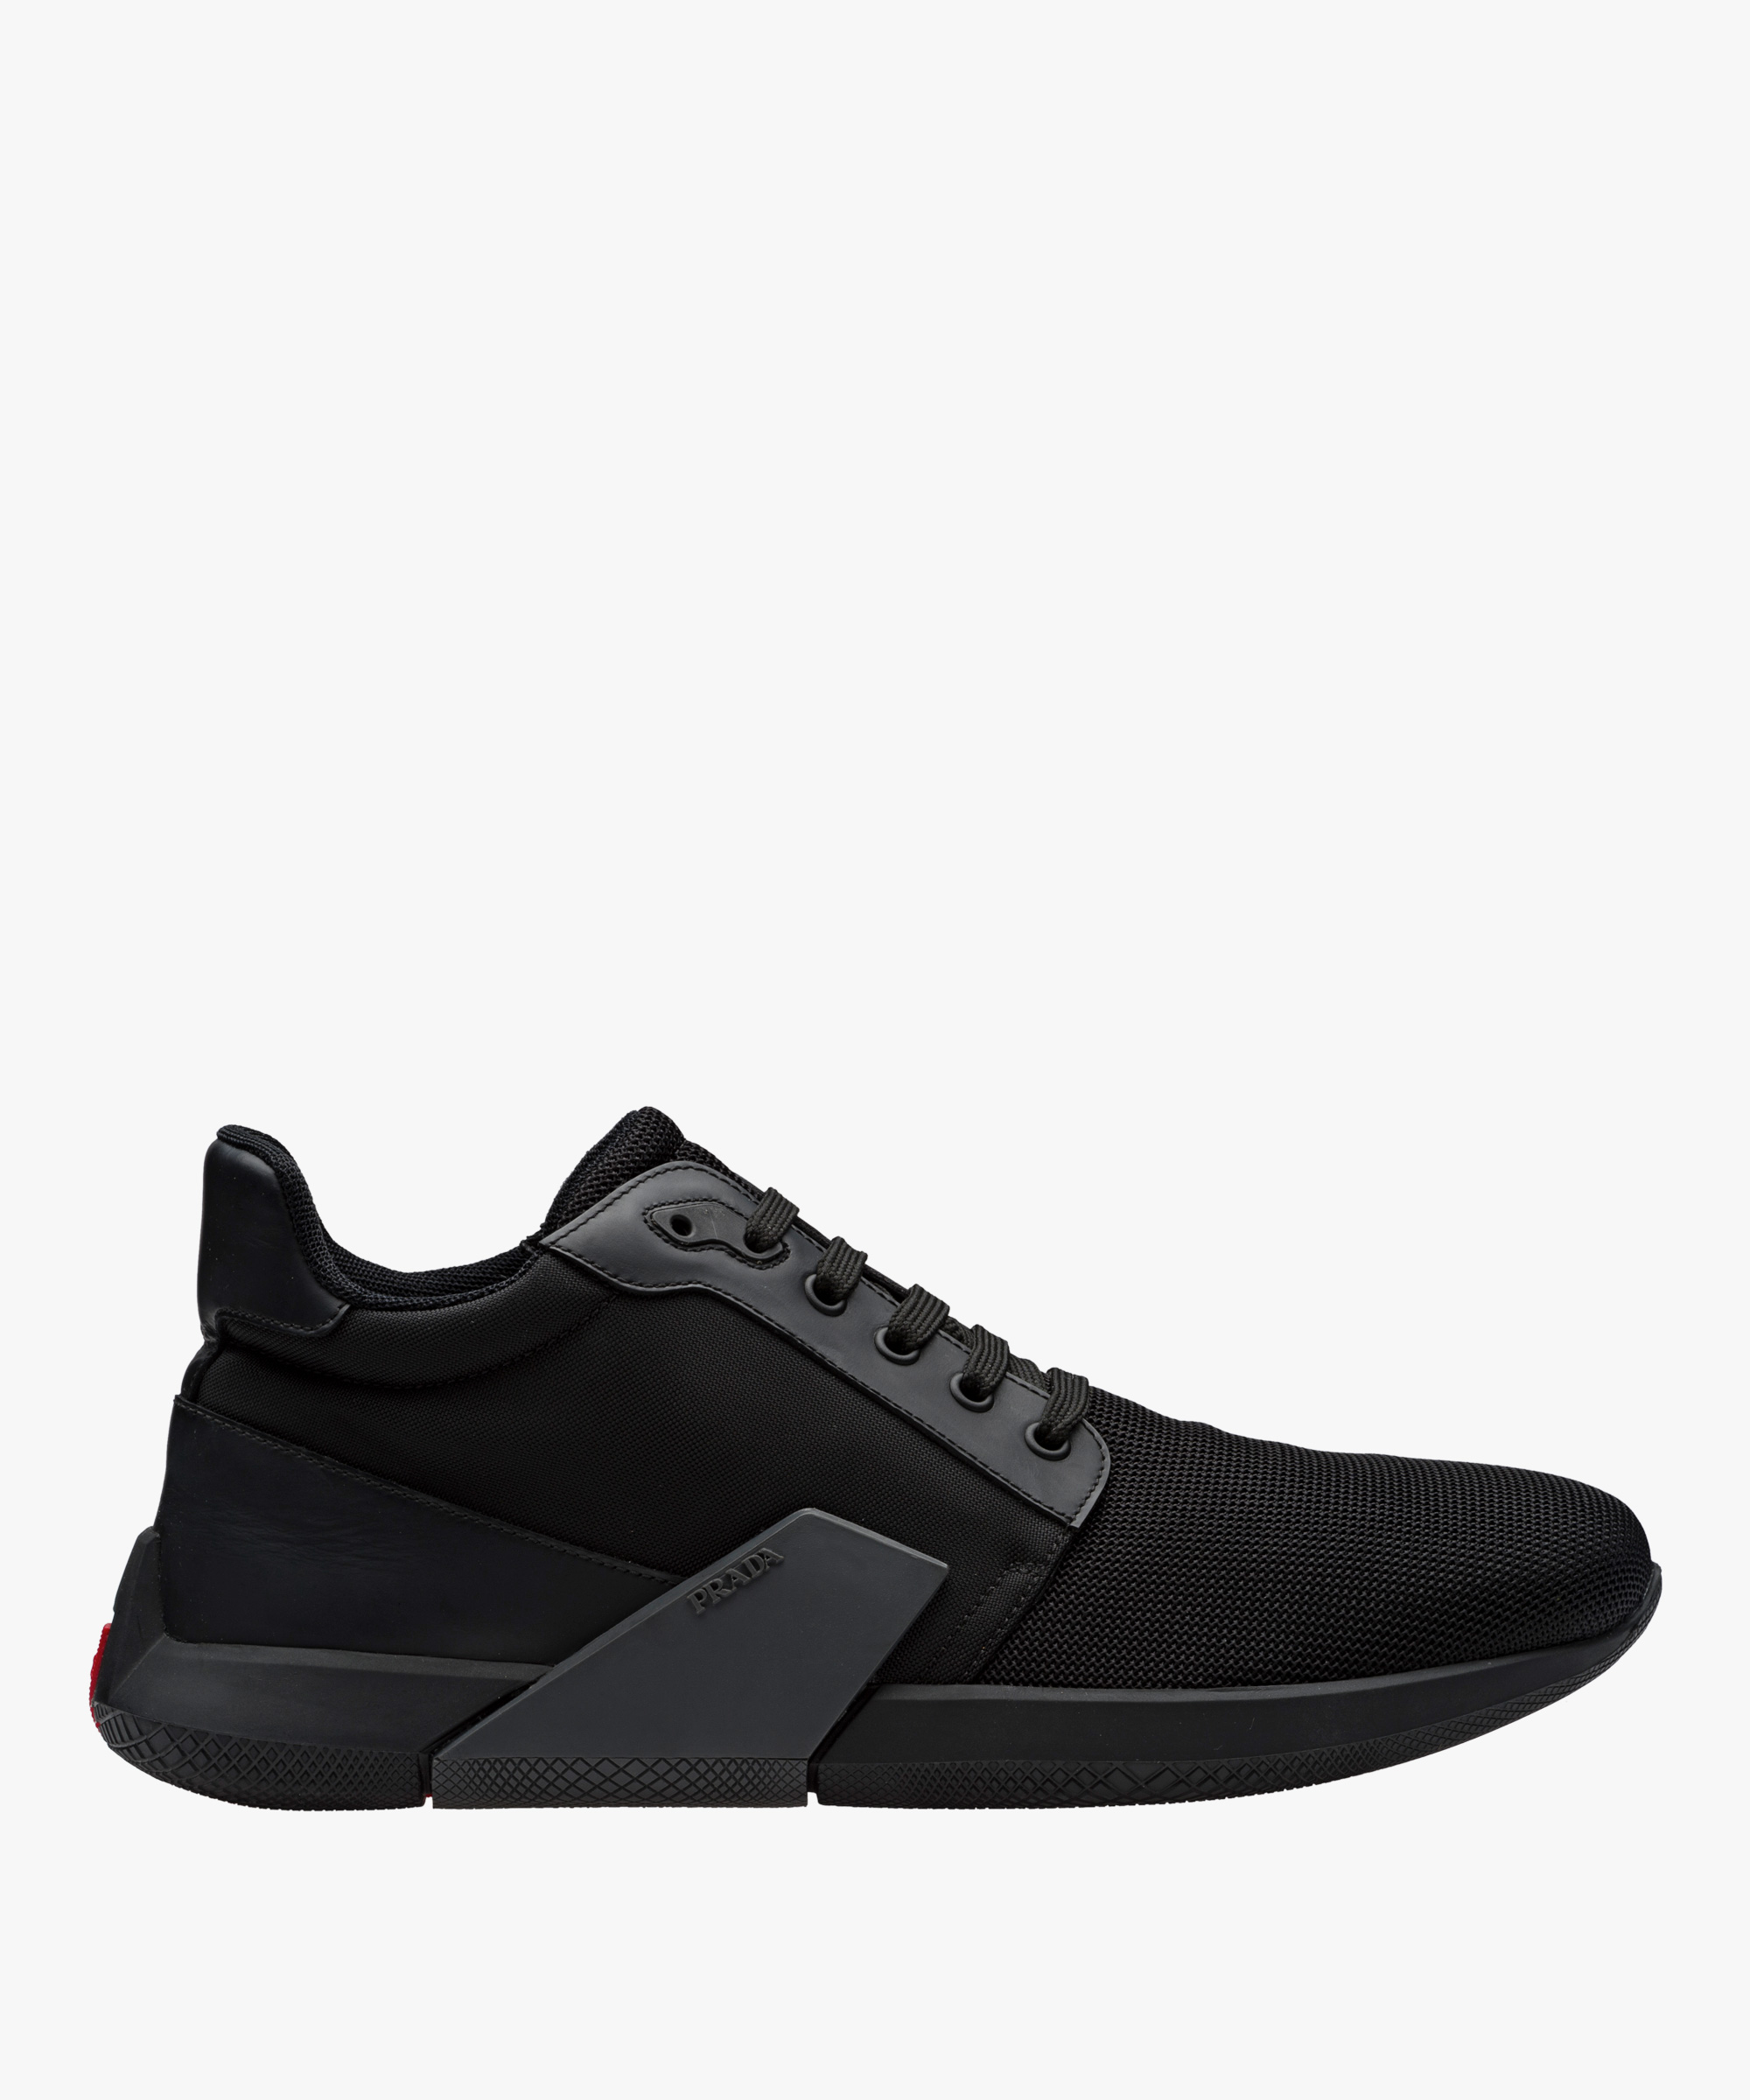 Prada technical fabric sneakers limited edition online footlocker pictures clearance order cheap sale under $60 for sale cheap authentic dsrNsv55XQ